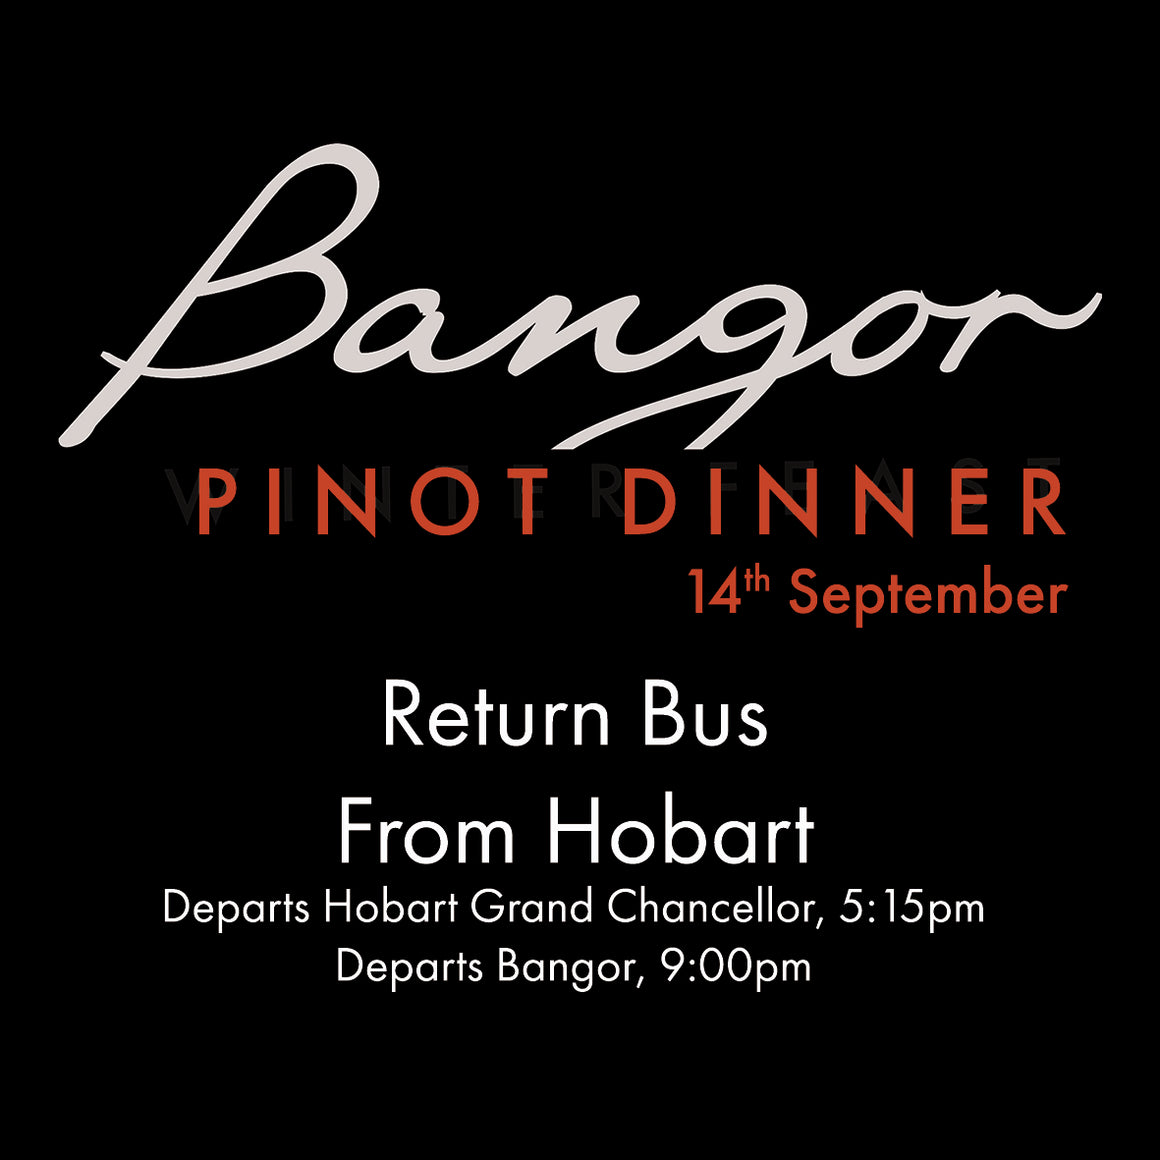 Return bus to Bangor Pinot Dinner